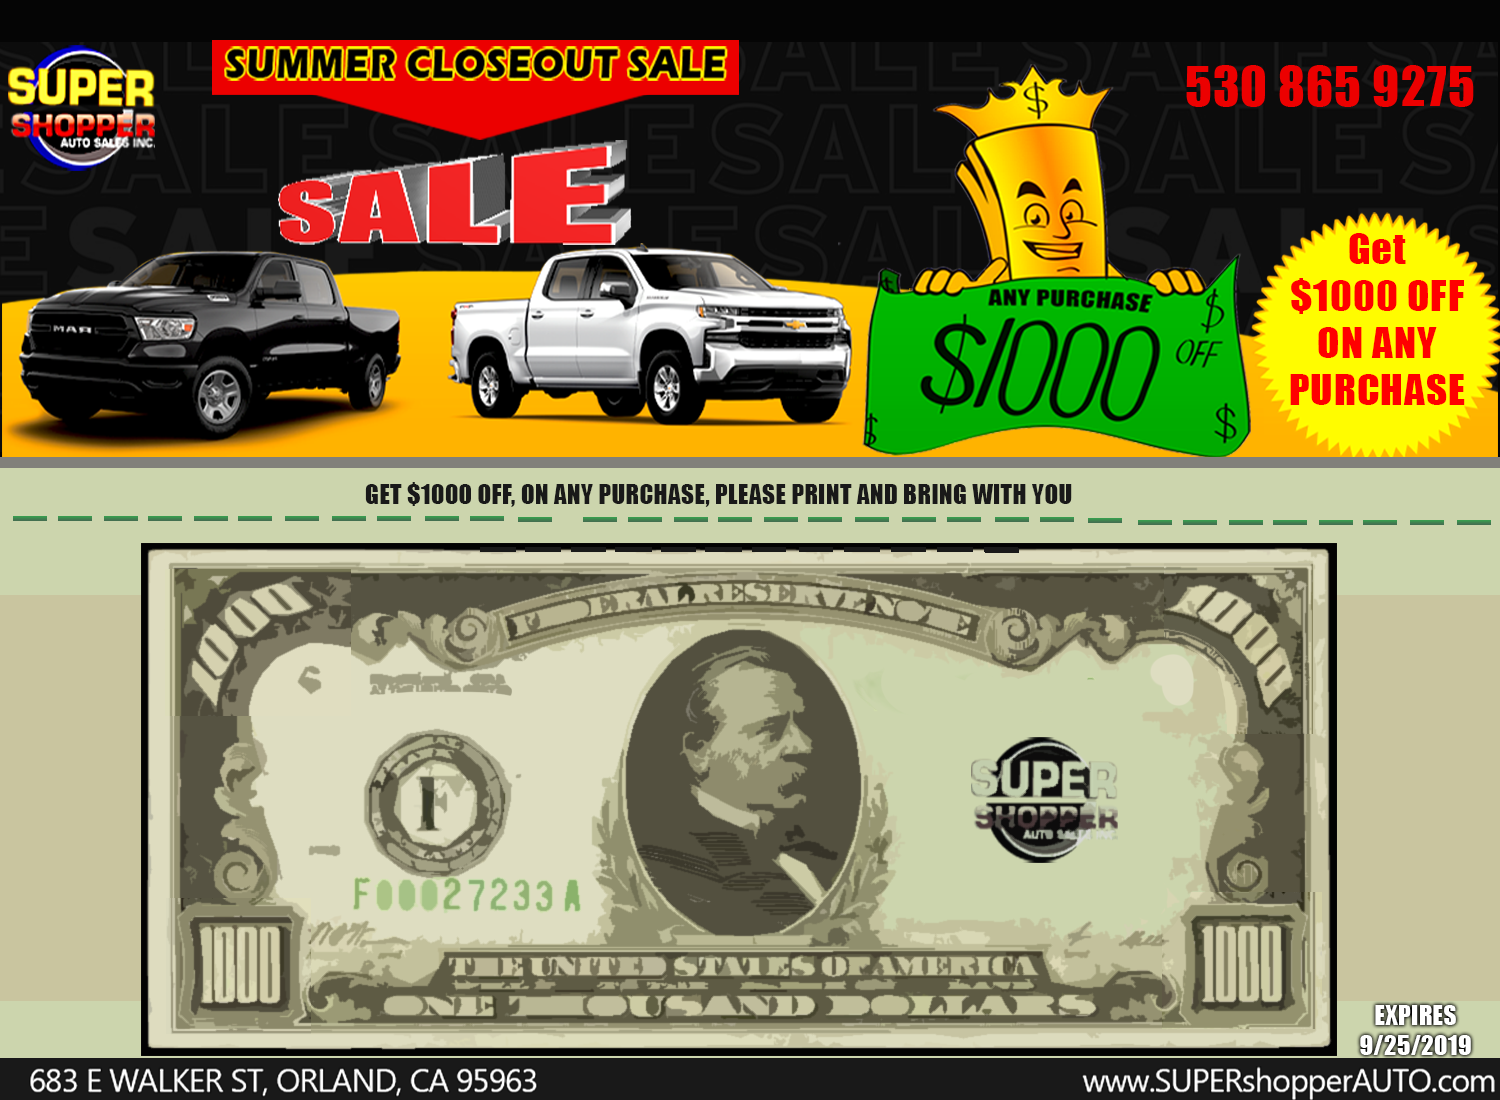 Orland Auto Auction >> Super Shopper Auto Sales Inc Orland Ca New Used Cars